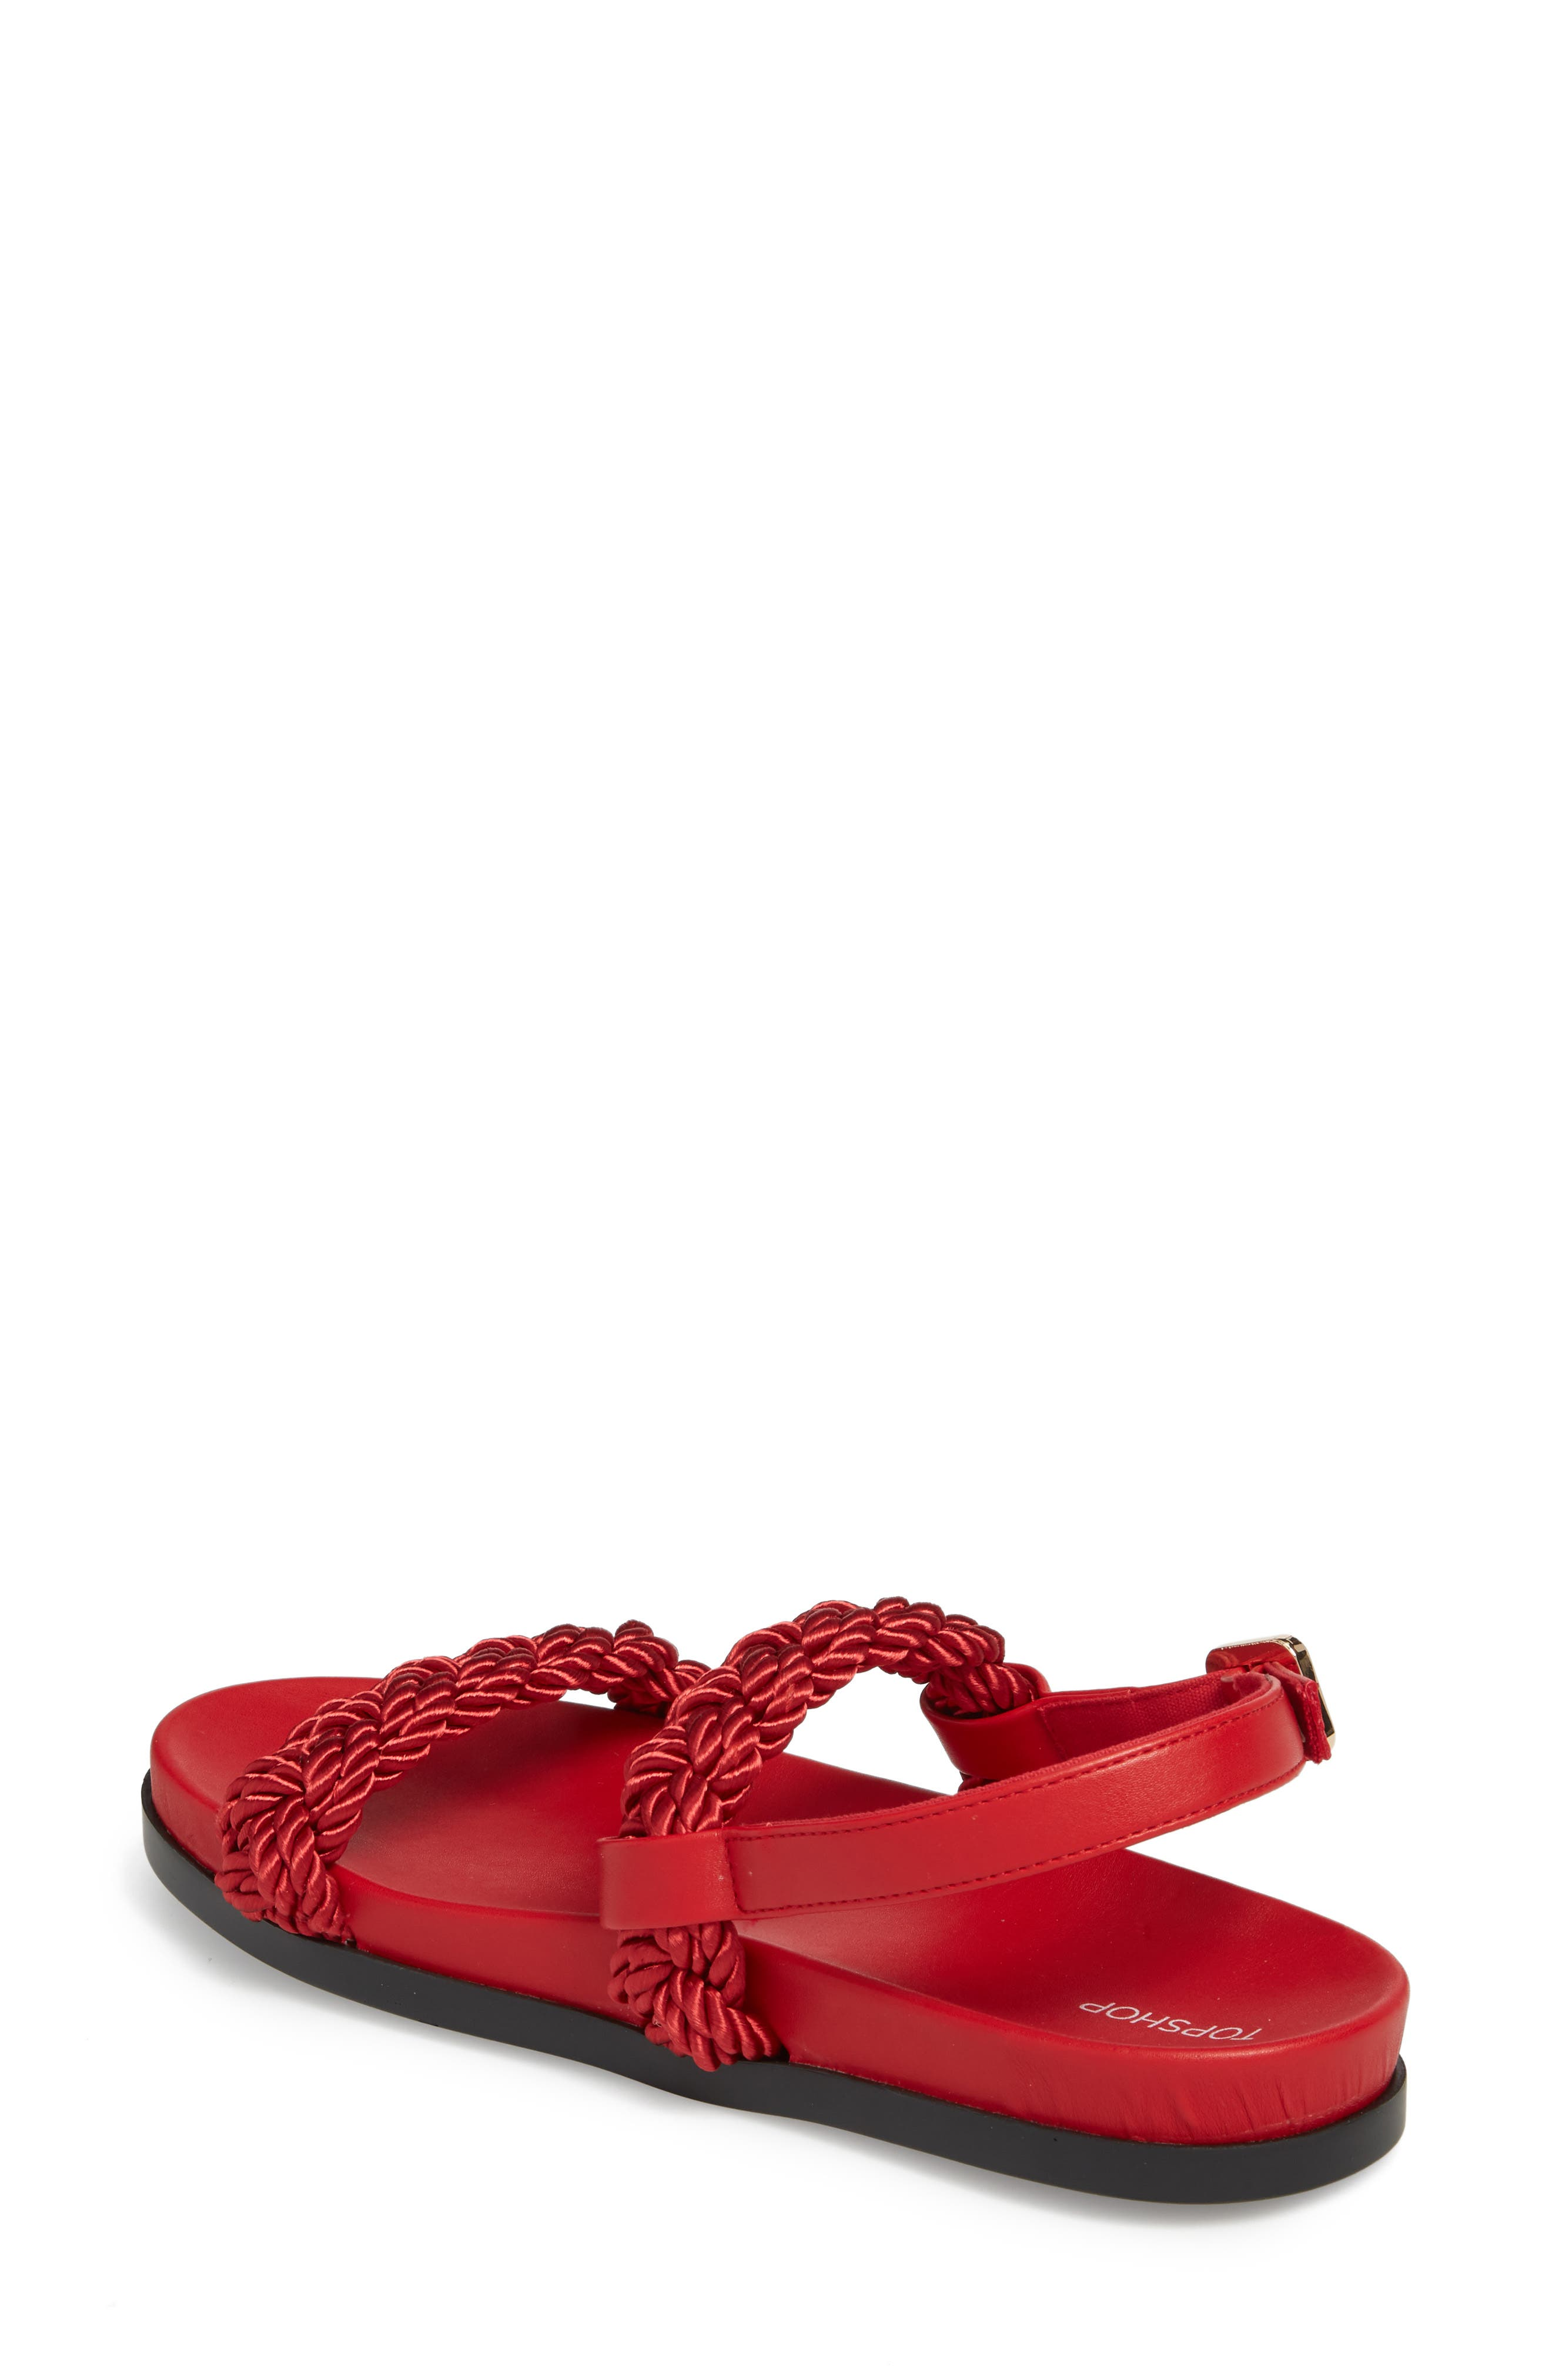 Hackney Rope Footbed Sandals,                             Alternate thumbnail 2, color,                             RED